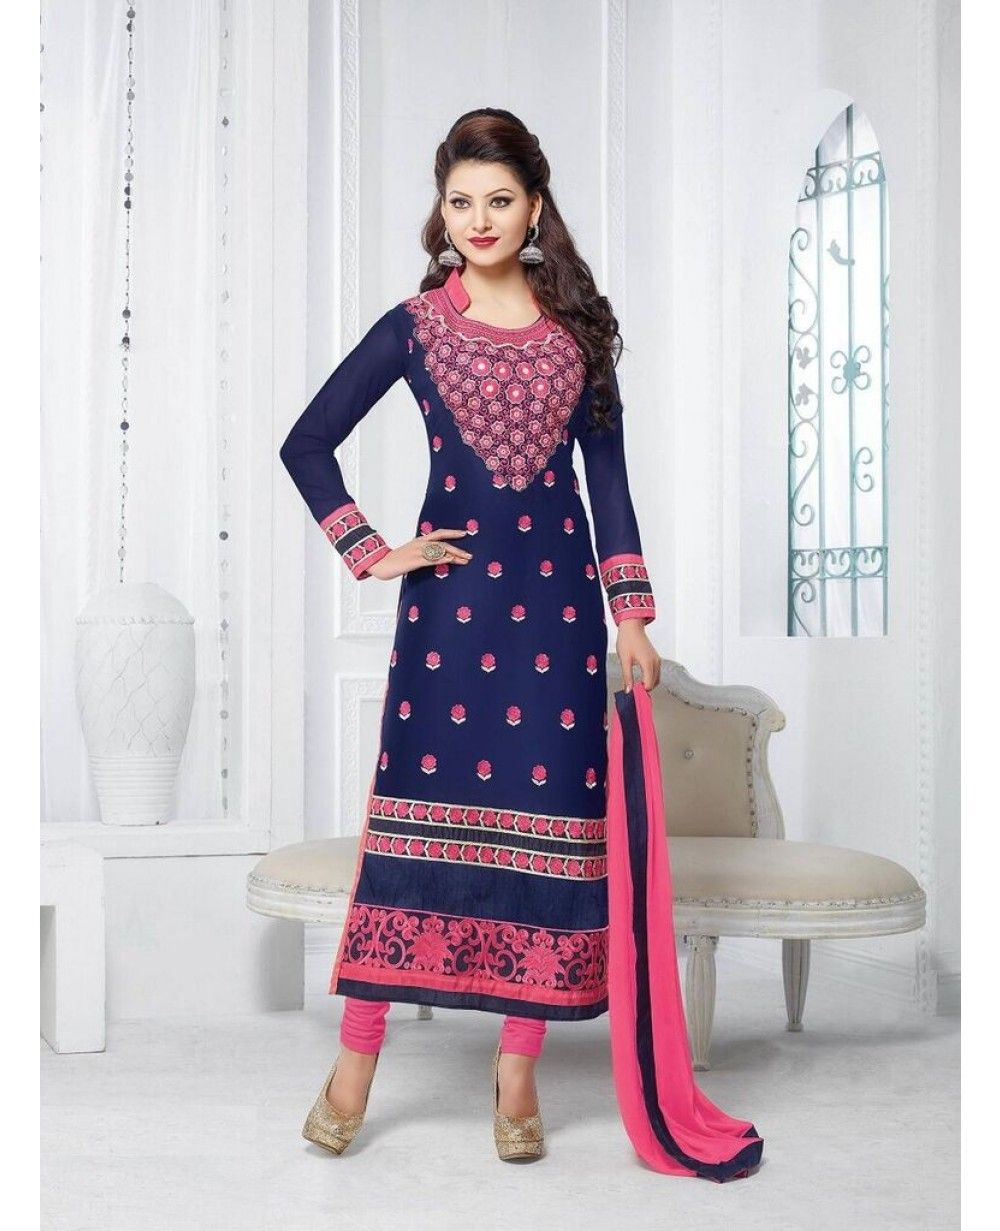 Fency Dress Material Suit Set - Dress Materials - Ethnic Wear - Indian Wear